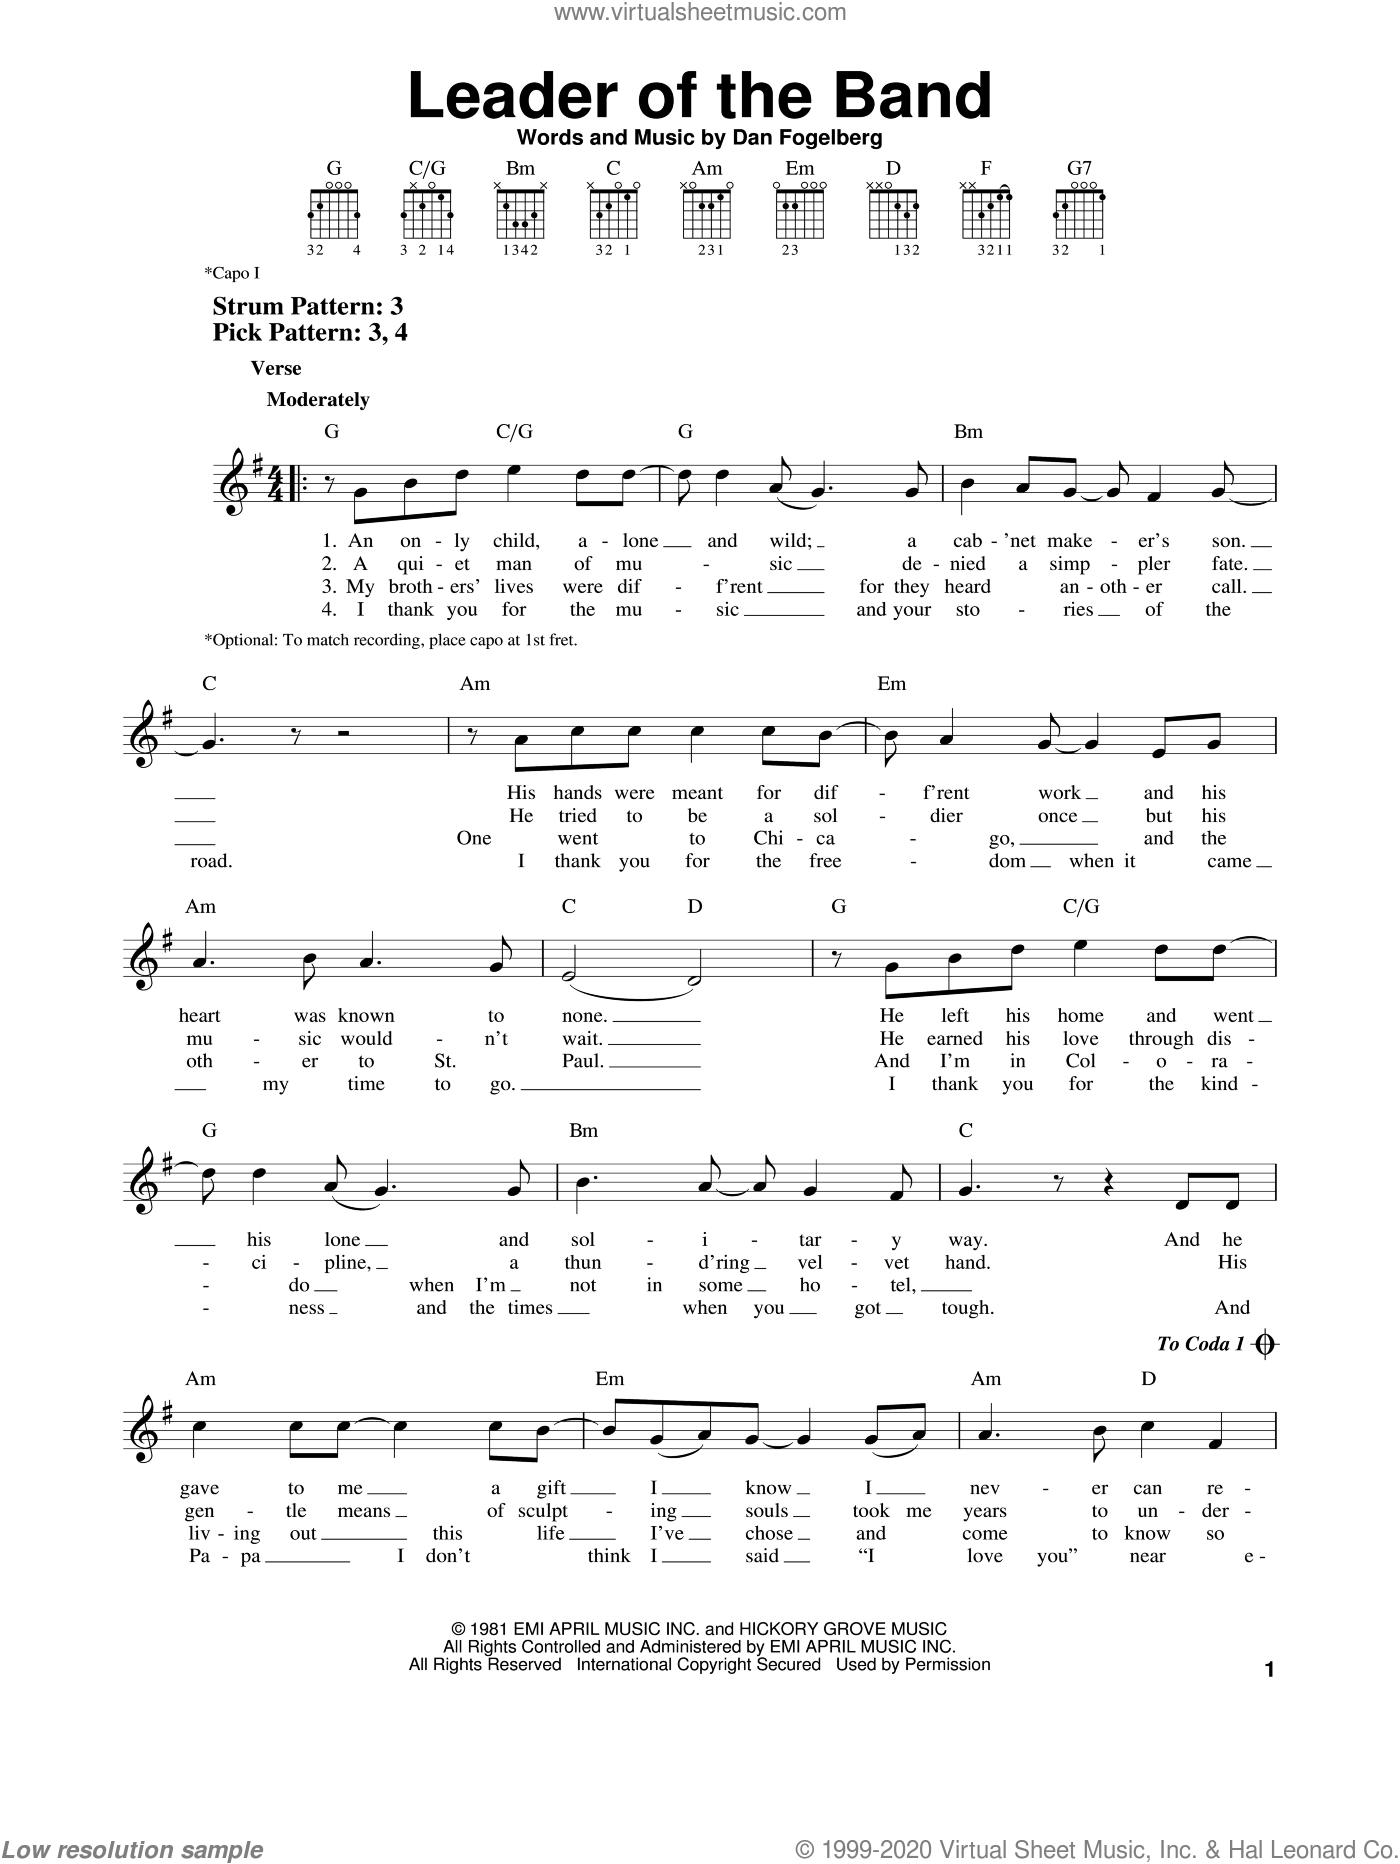 Leader Of The Band sheet music for guitar solo (chords) by Dan Fogelberg. Score Image Preview.